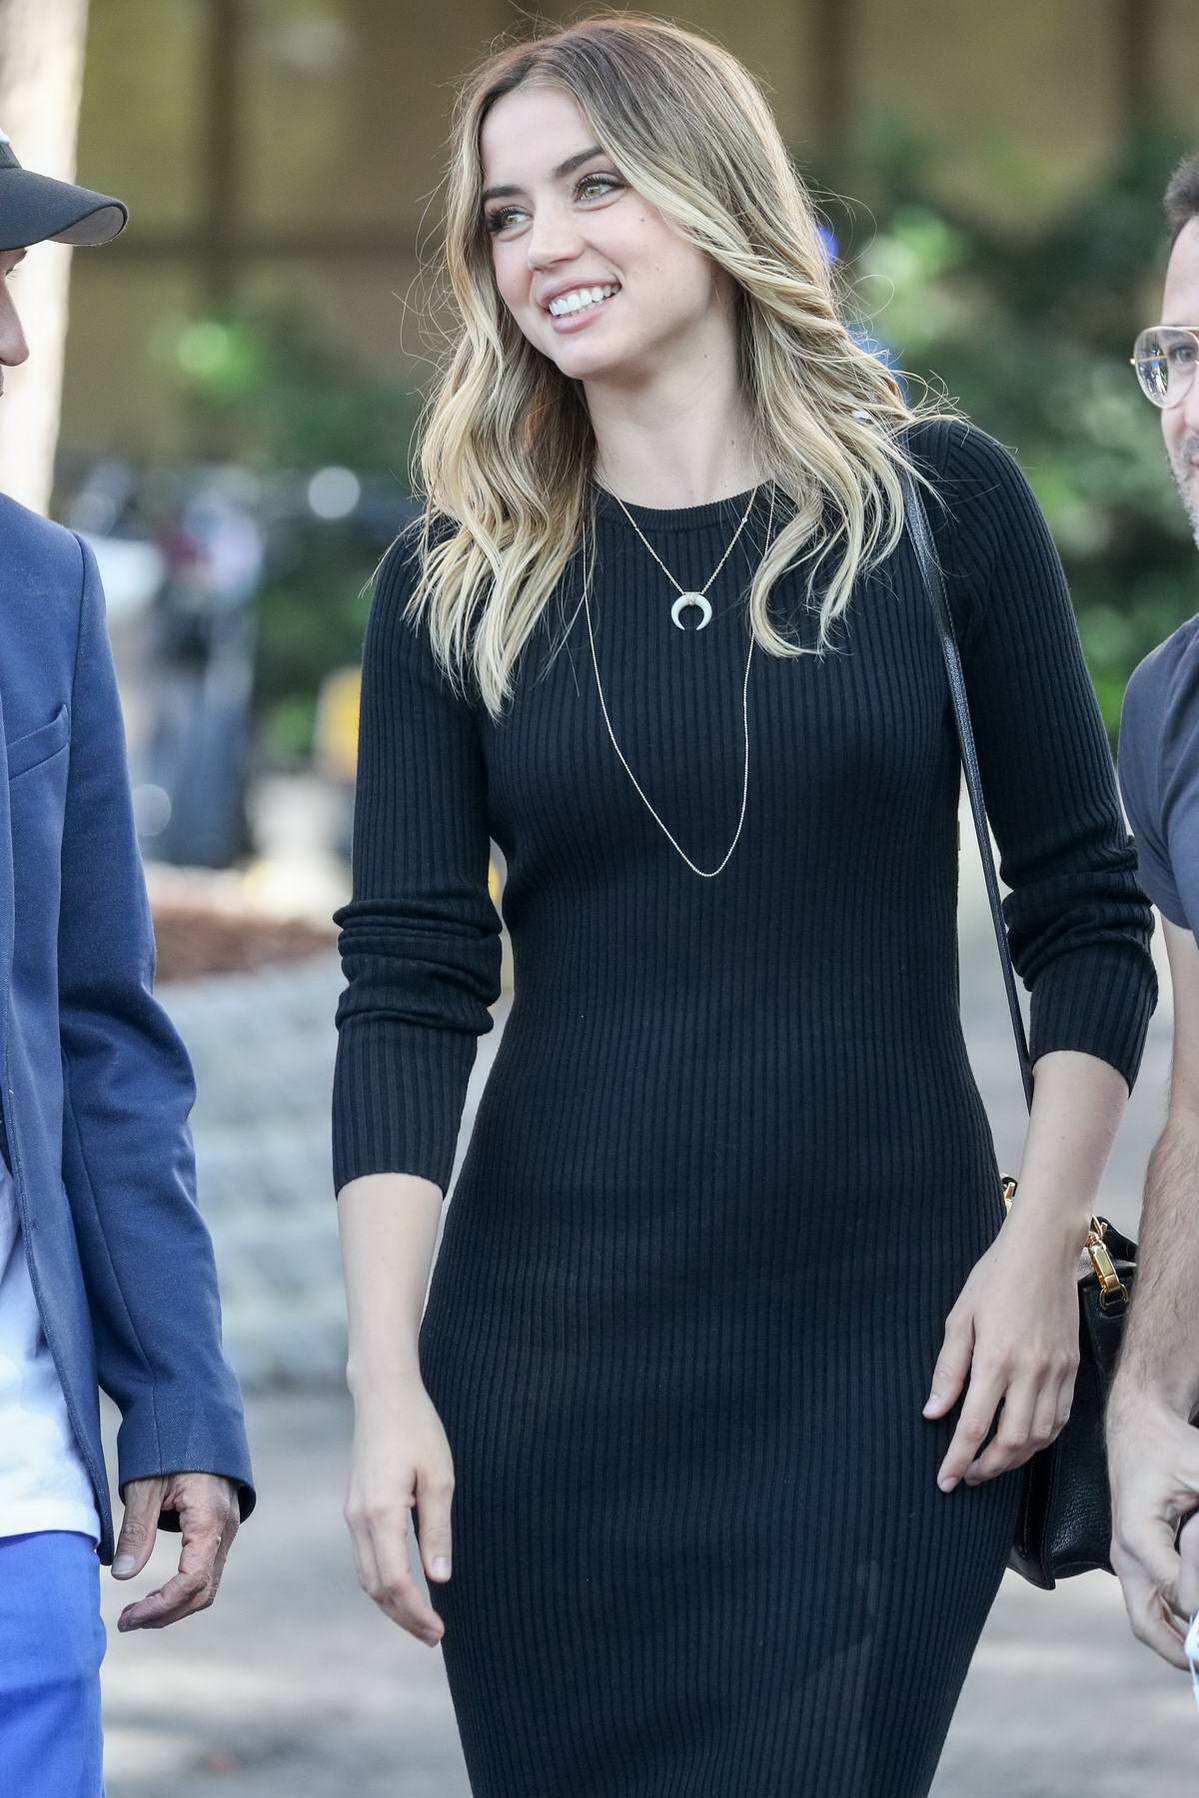 Ana de Armas greeted by her fans in Madrid, Spain